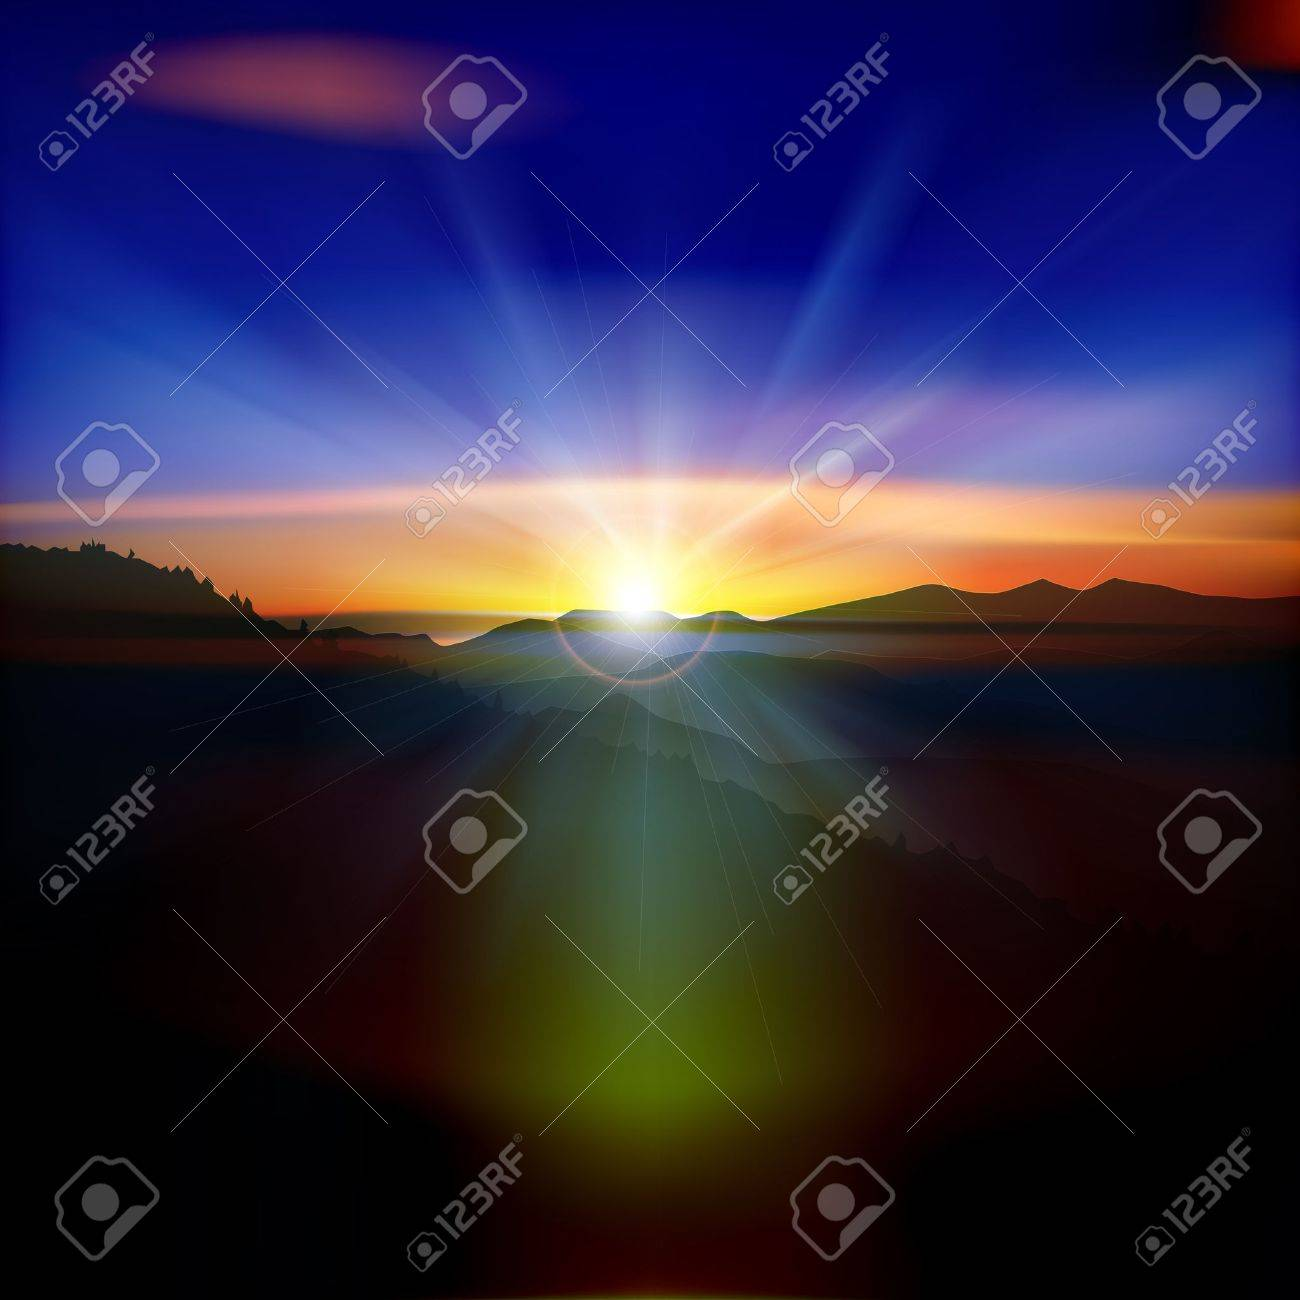 abstract nature background with mountains and sunrise Stock Vector - 20008745